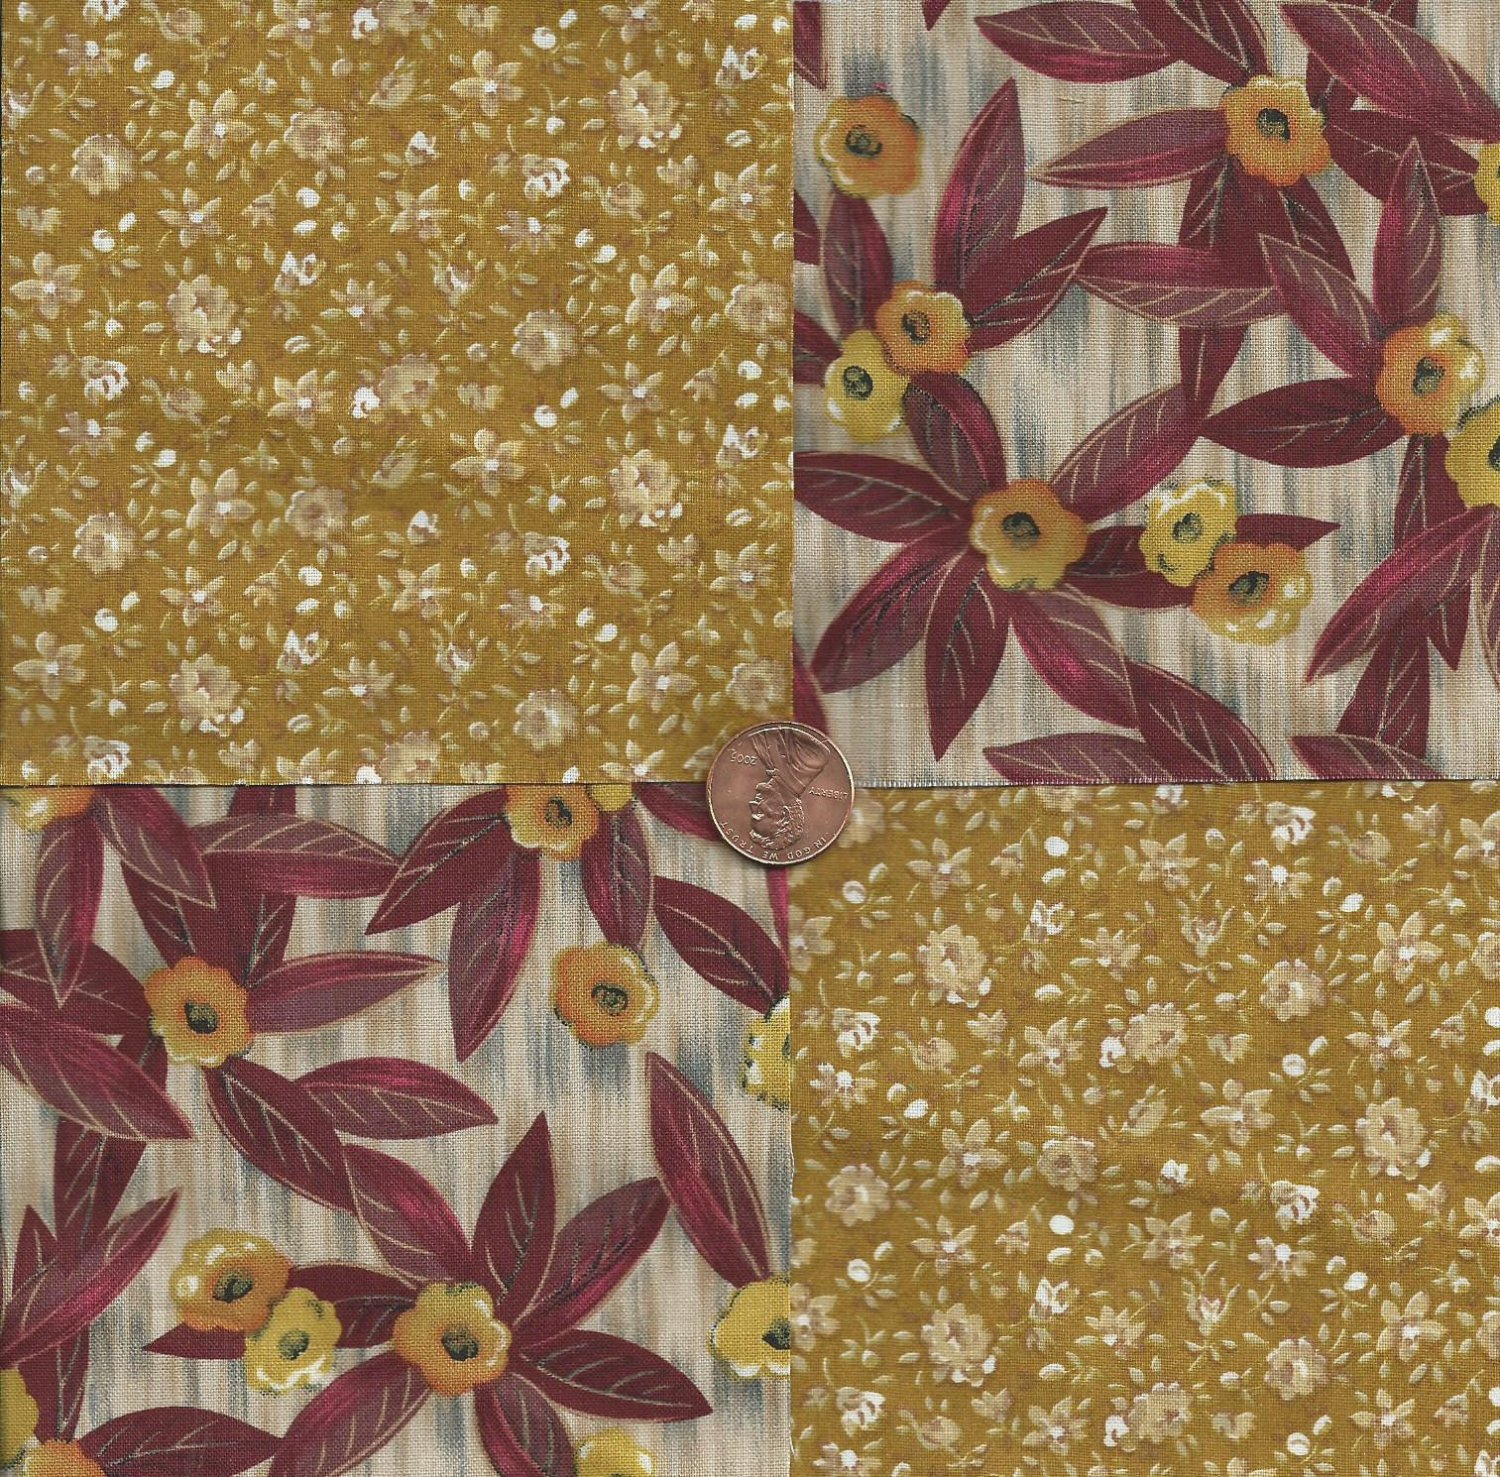 Awesome Gold Flowers  4 inch Cotton Fabric Craft Quilt  Squares  Blocks wz1